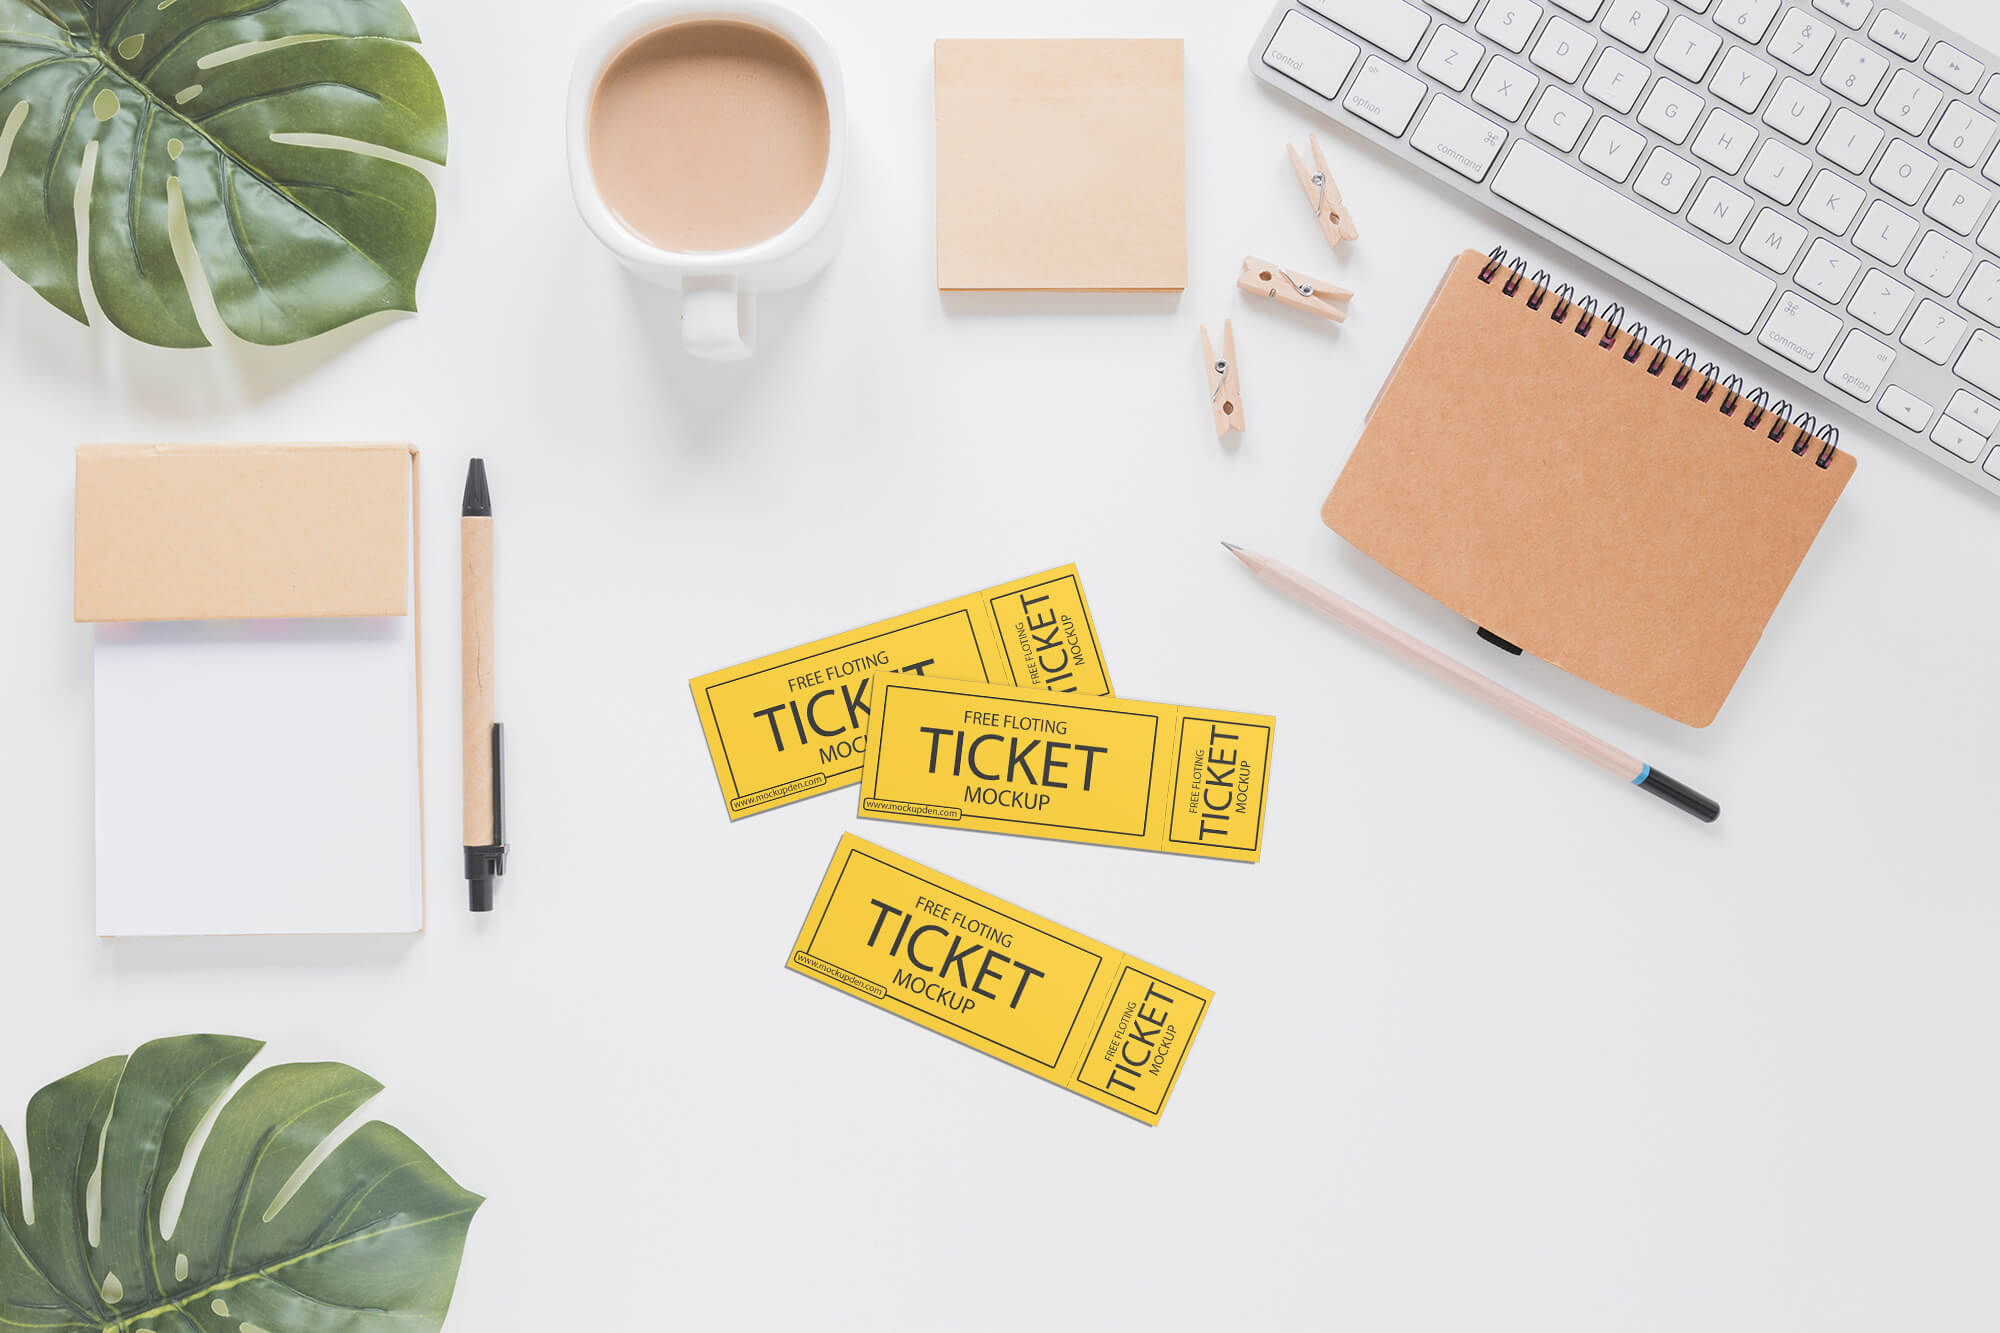 Free Top View Ticket Mockup PSD Template